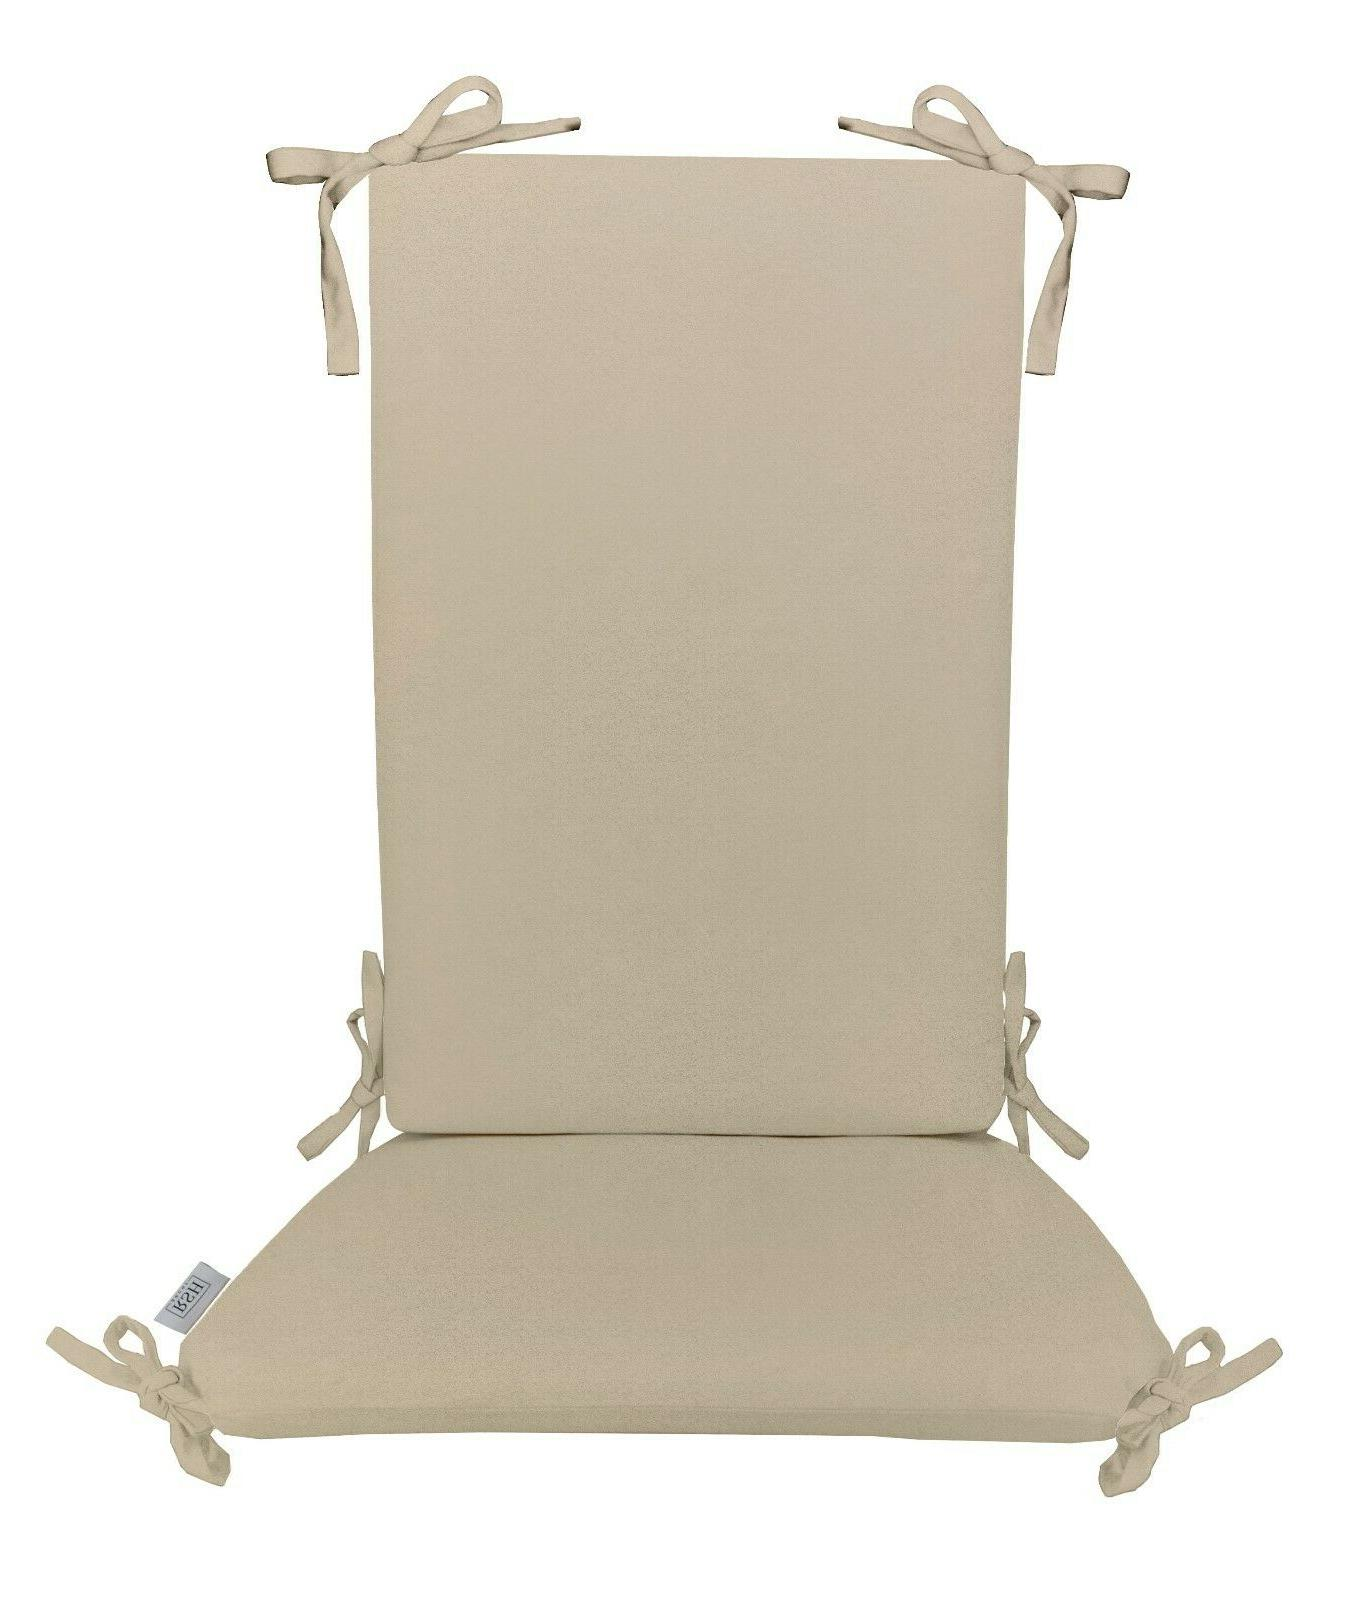 foam rocking chair pad cushion made from